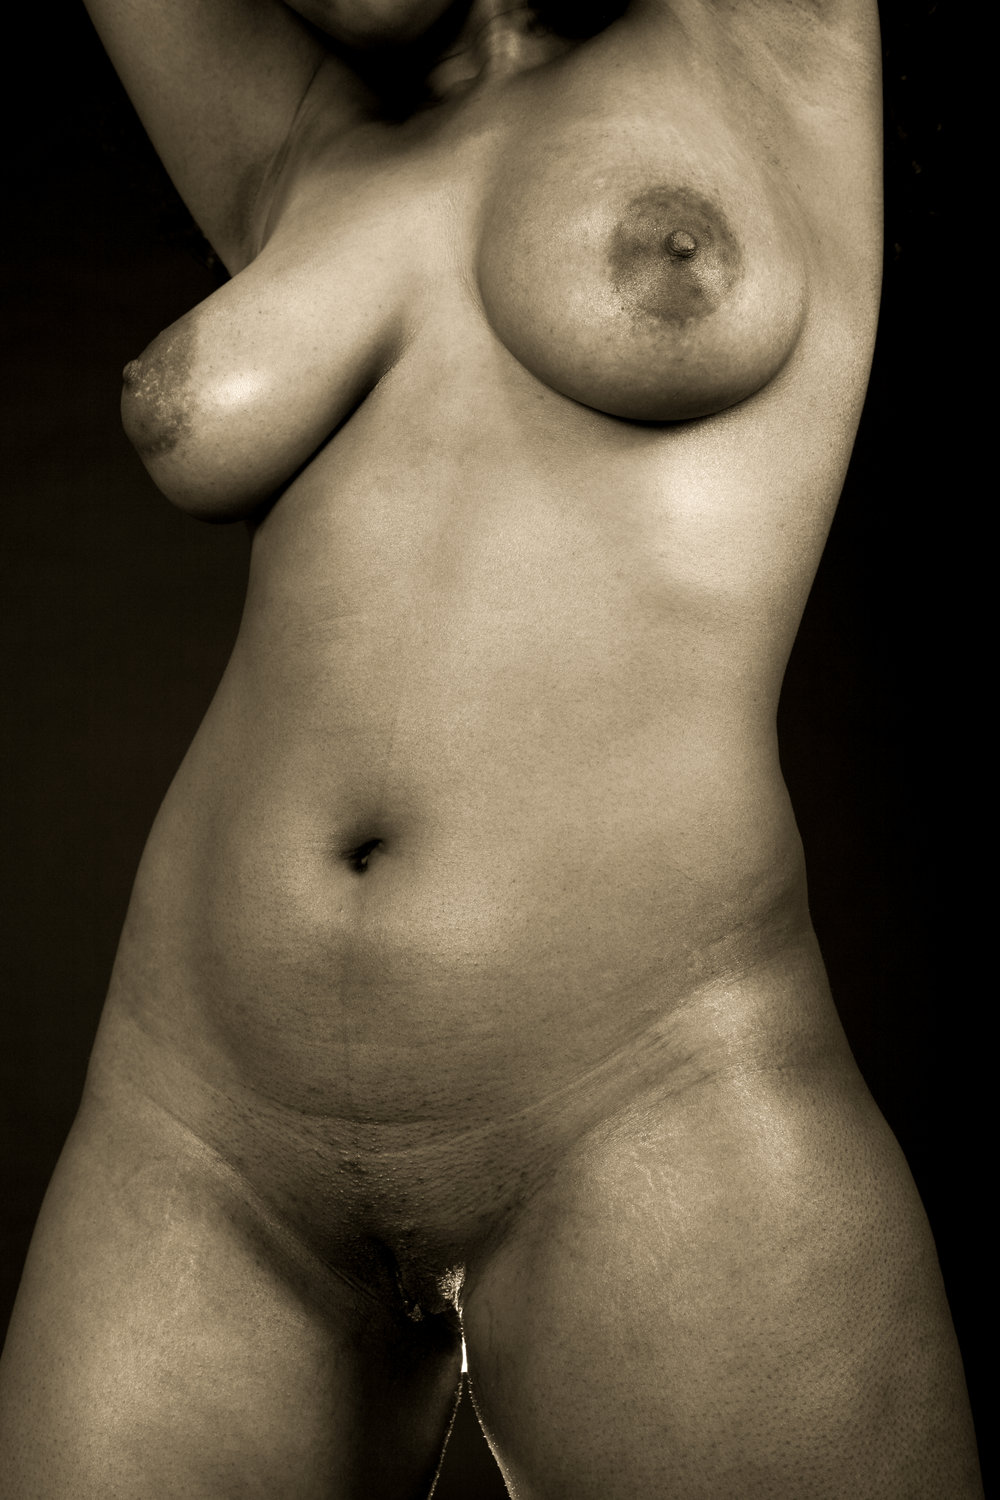 Inspired by Botero